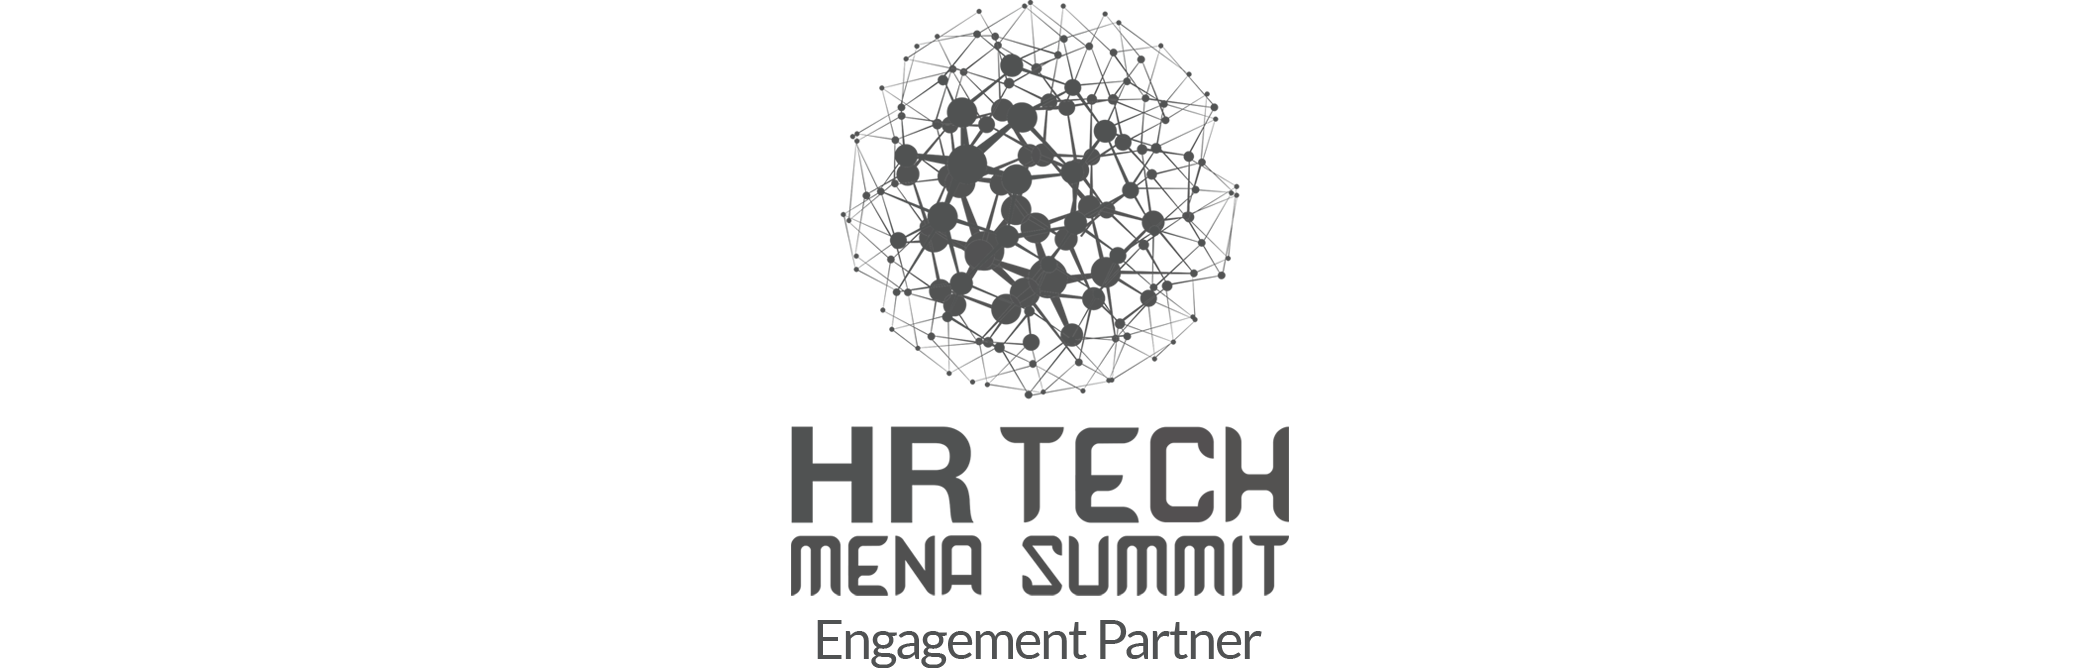 HRTech-engagement-partner